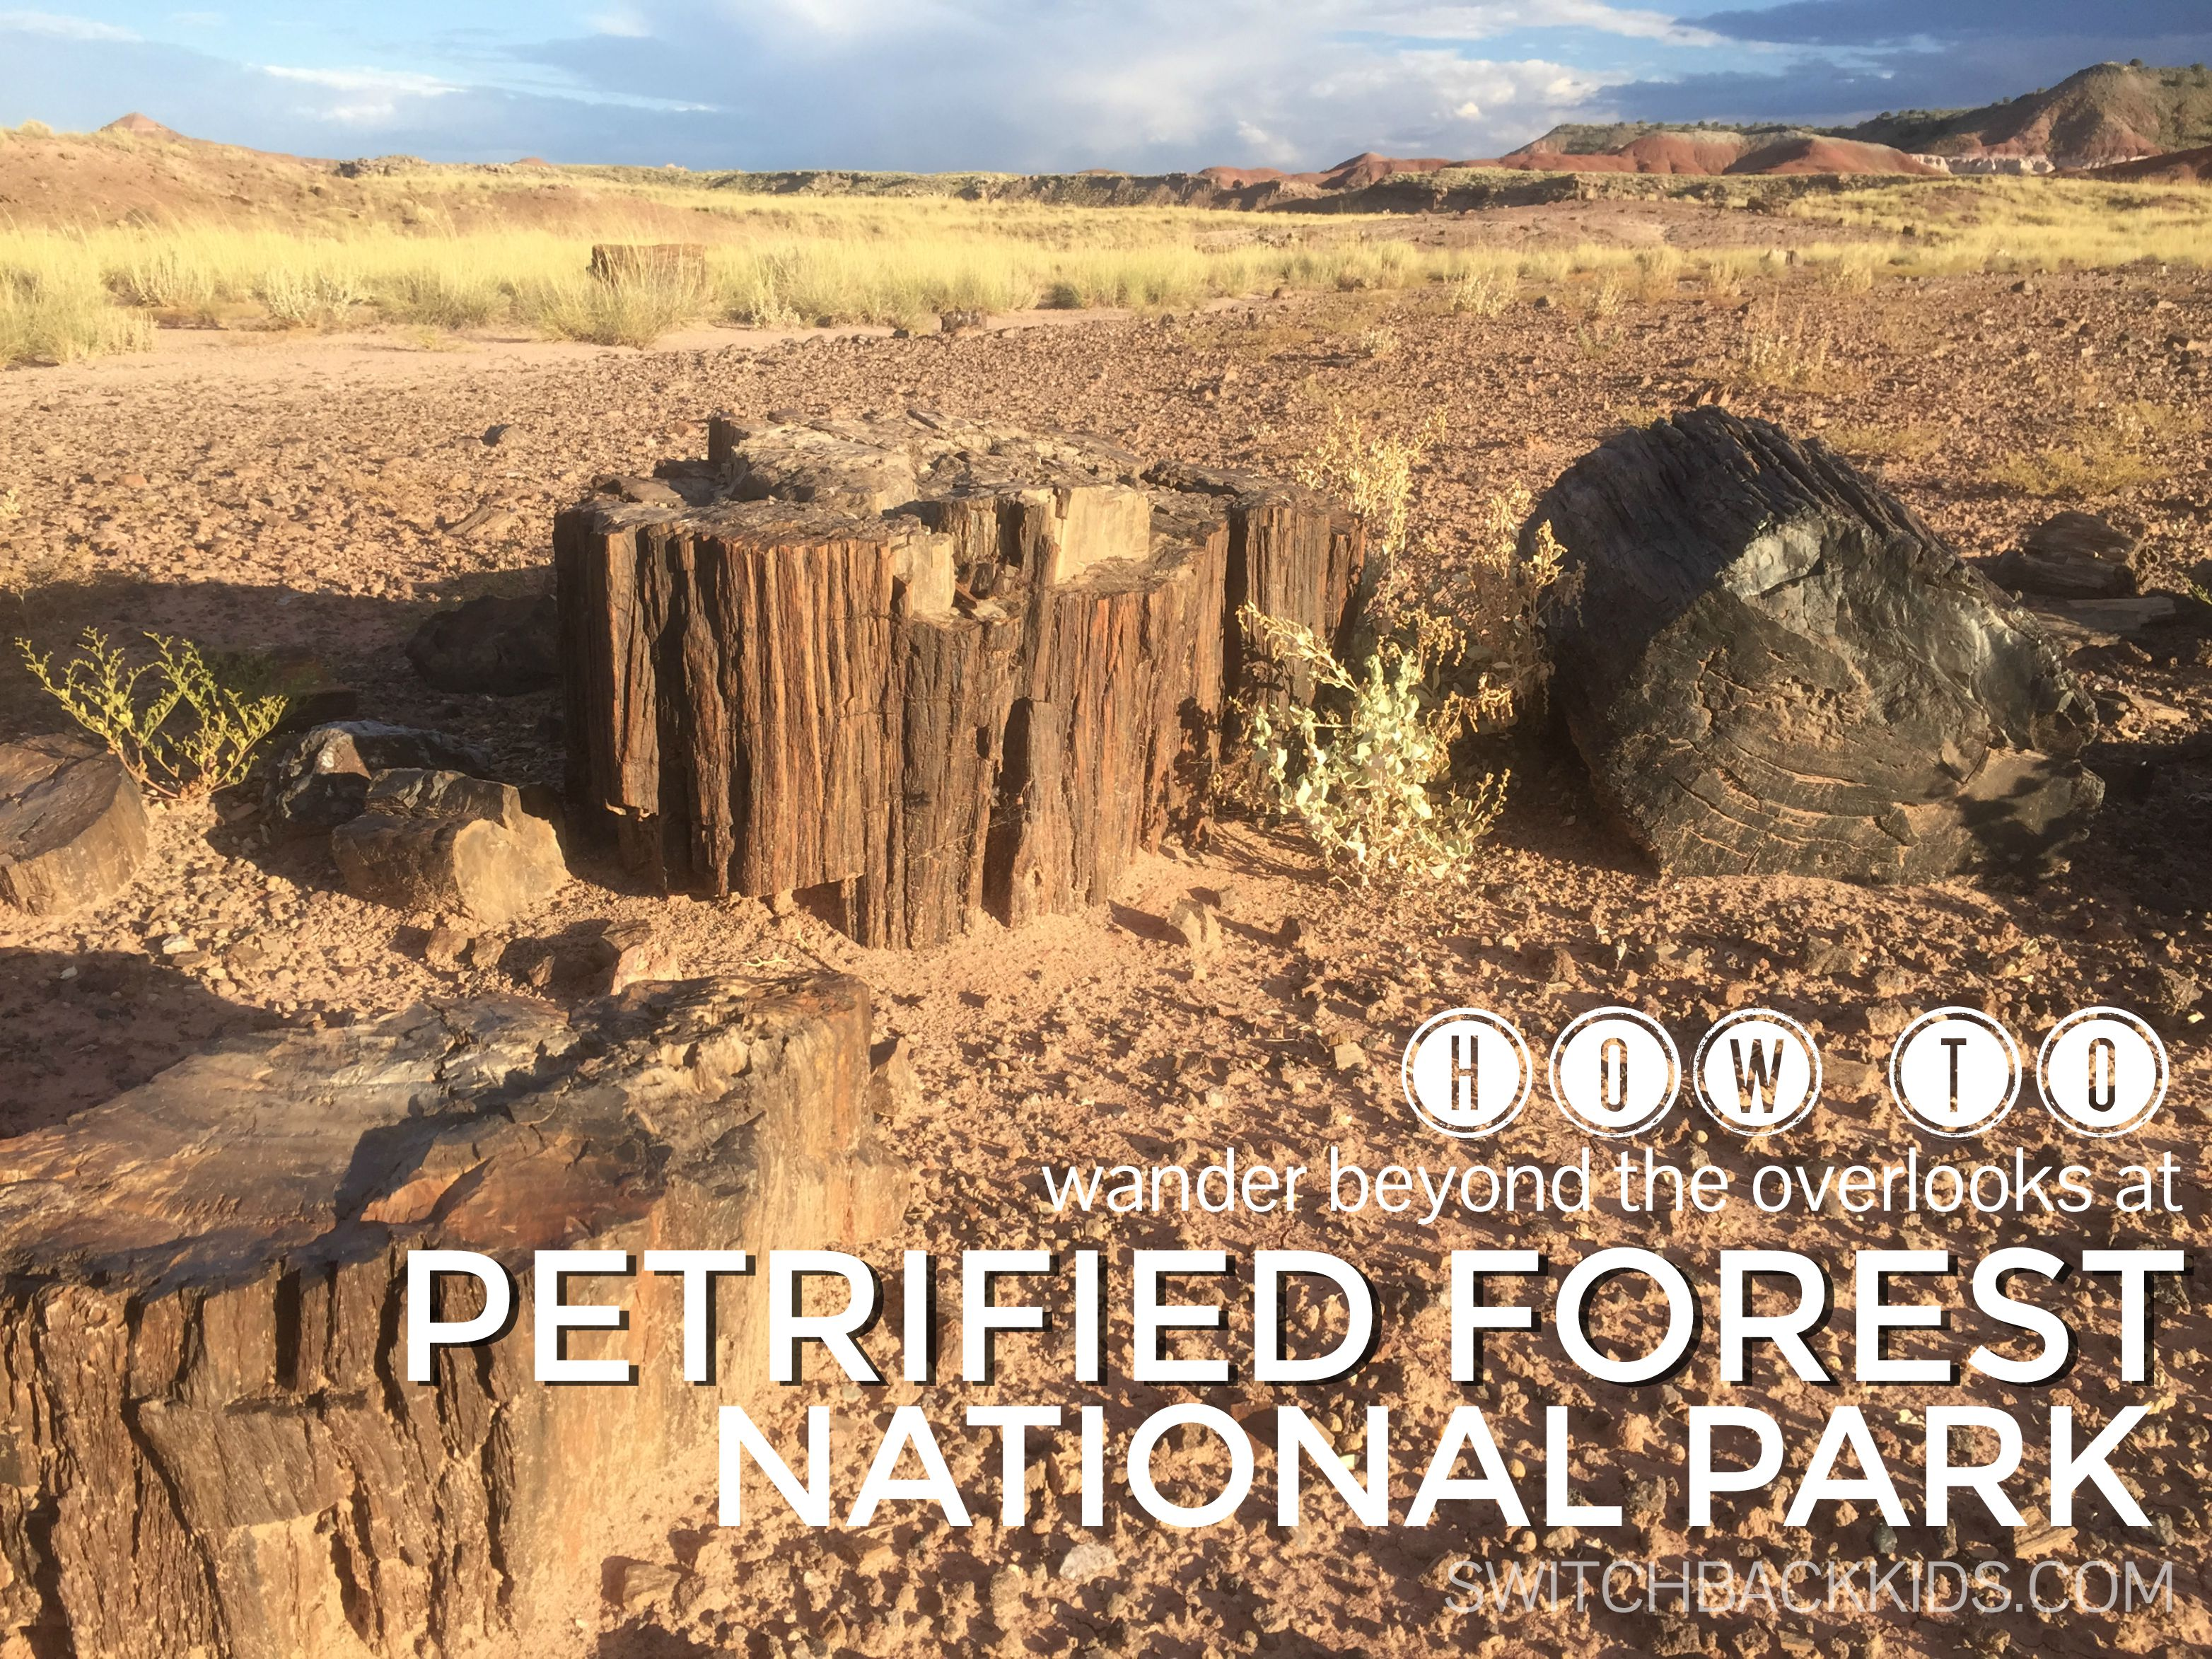 VIDEO: Petrified Forest National Park